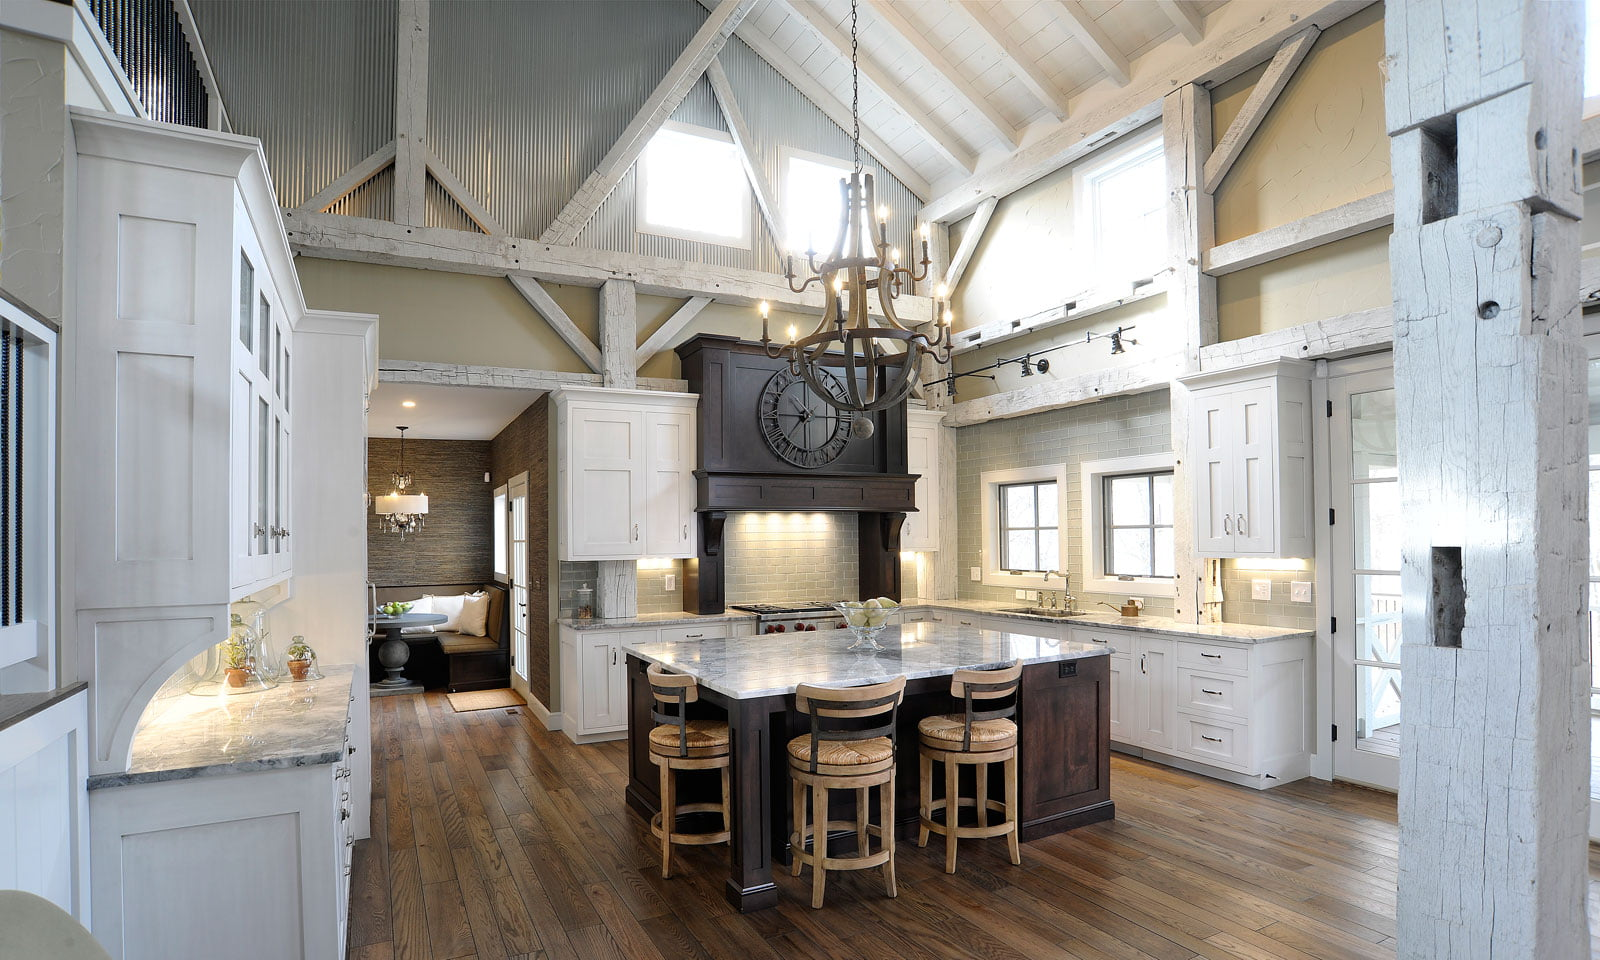 37 Stylish Kitchen Designs For Your Barn Home - Metal ...